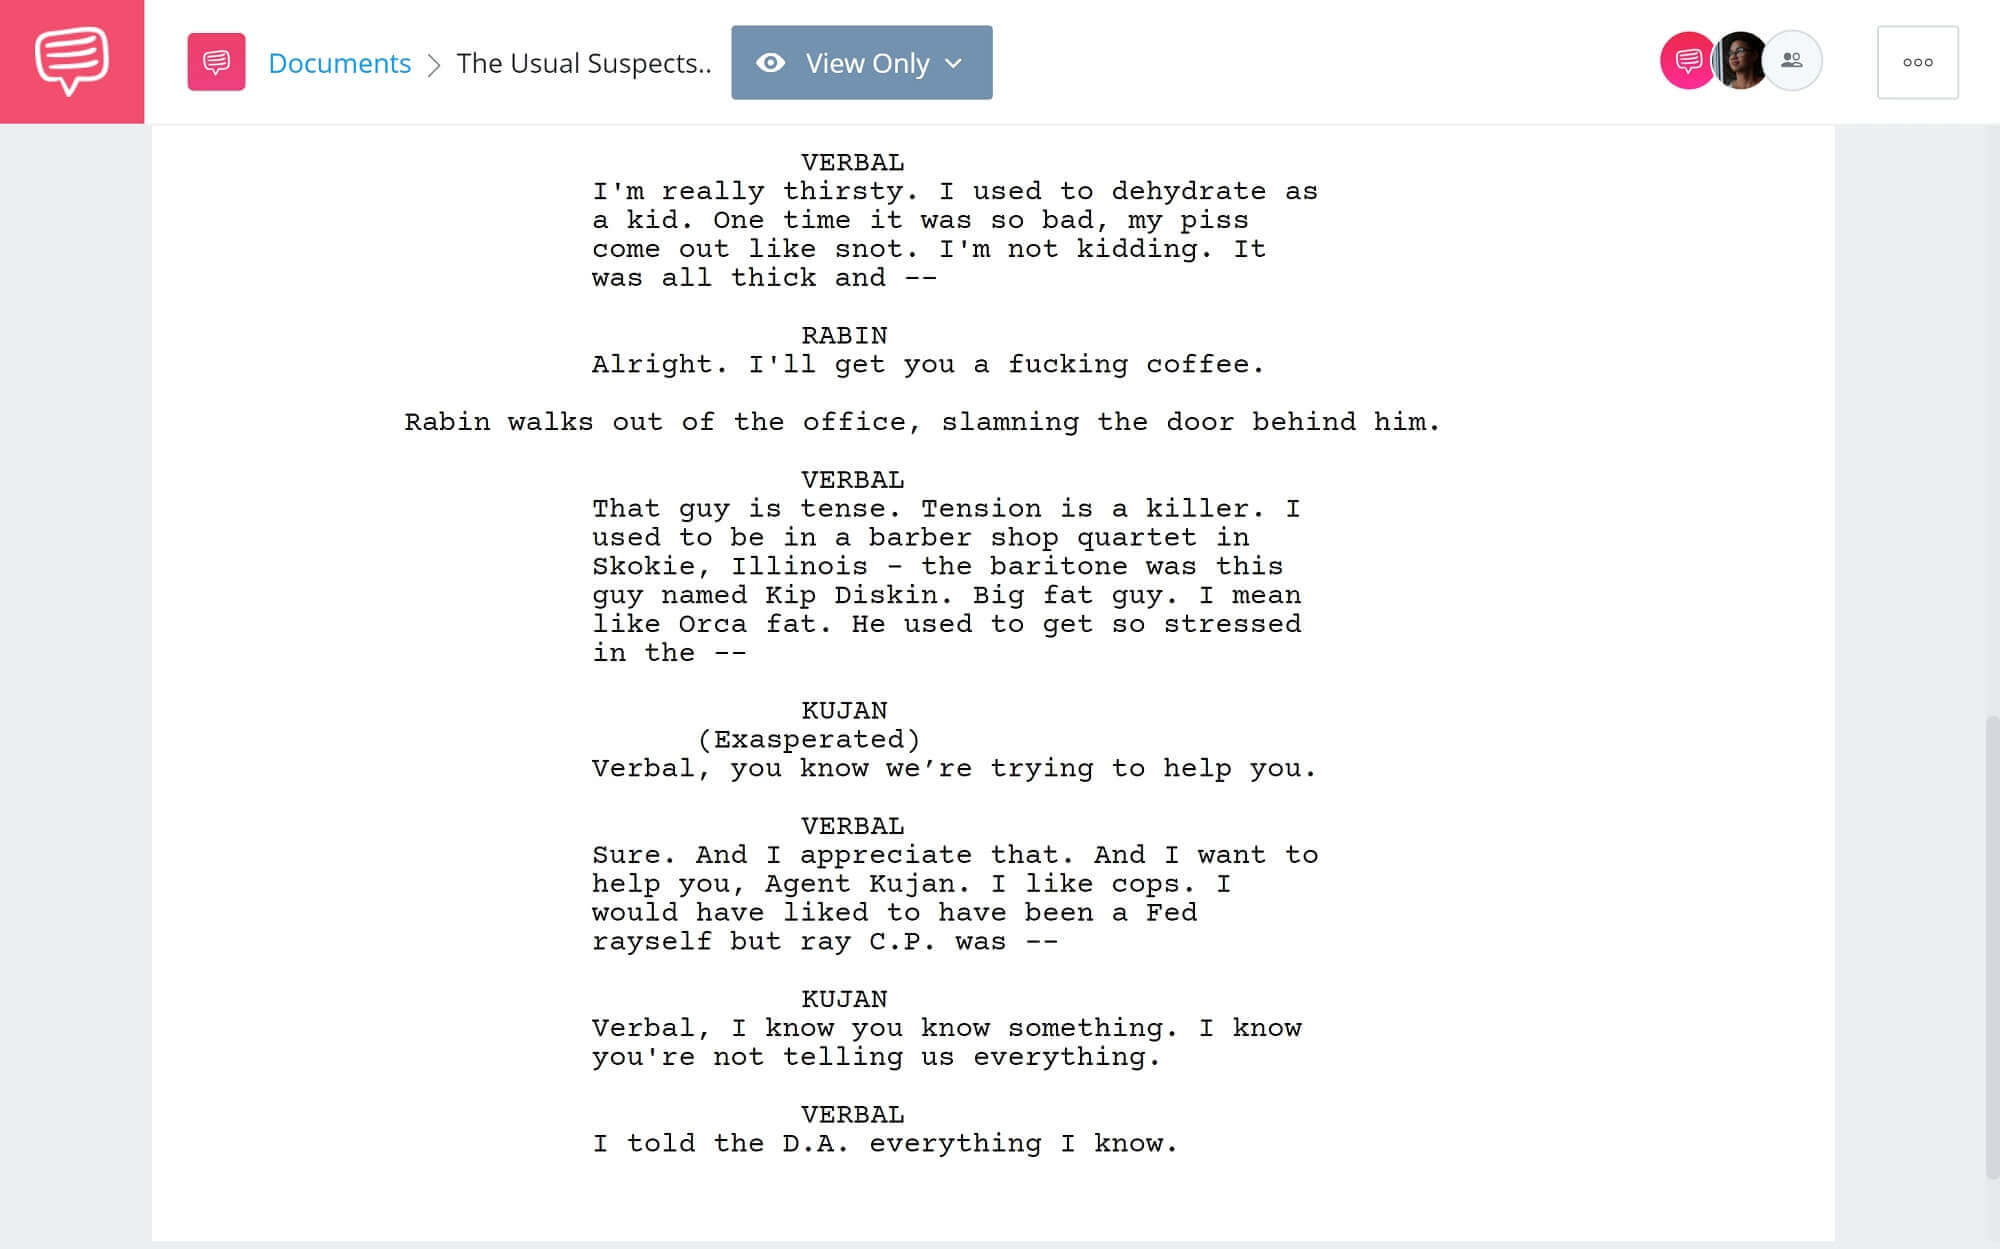 What is an Unreliable Narrator - The Usual Suspects Barber Shop Quartet - Studiobinder Scriptwriting Software